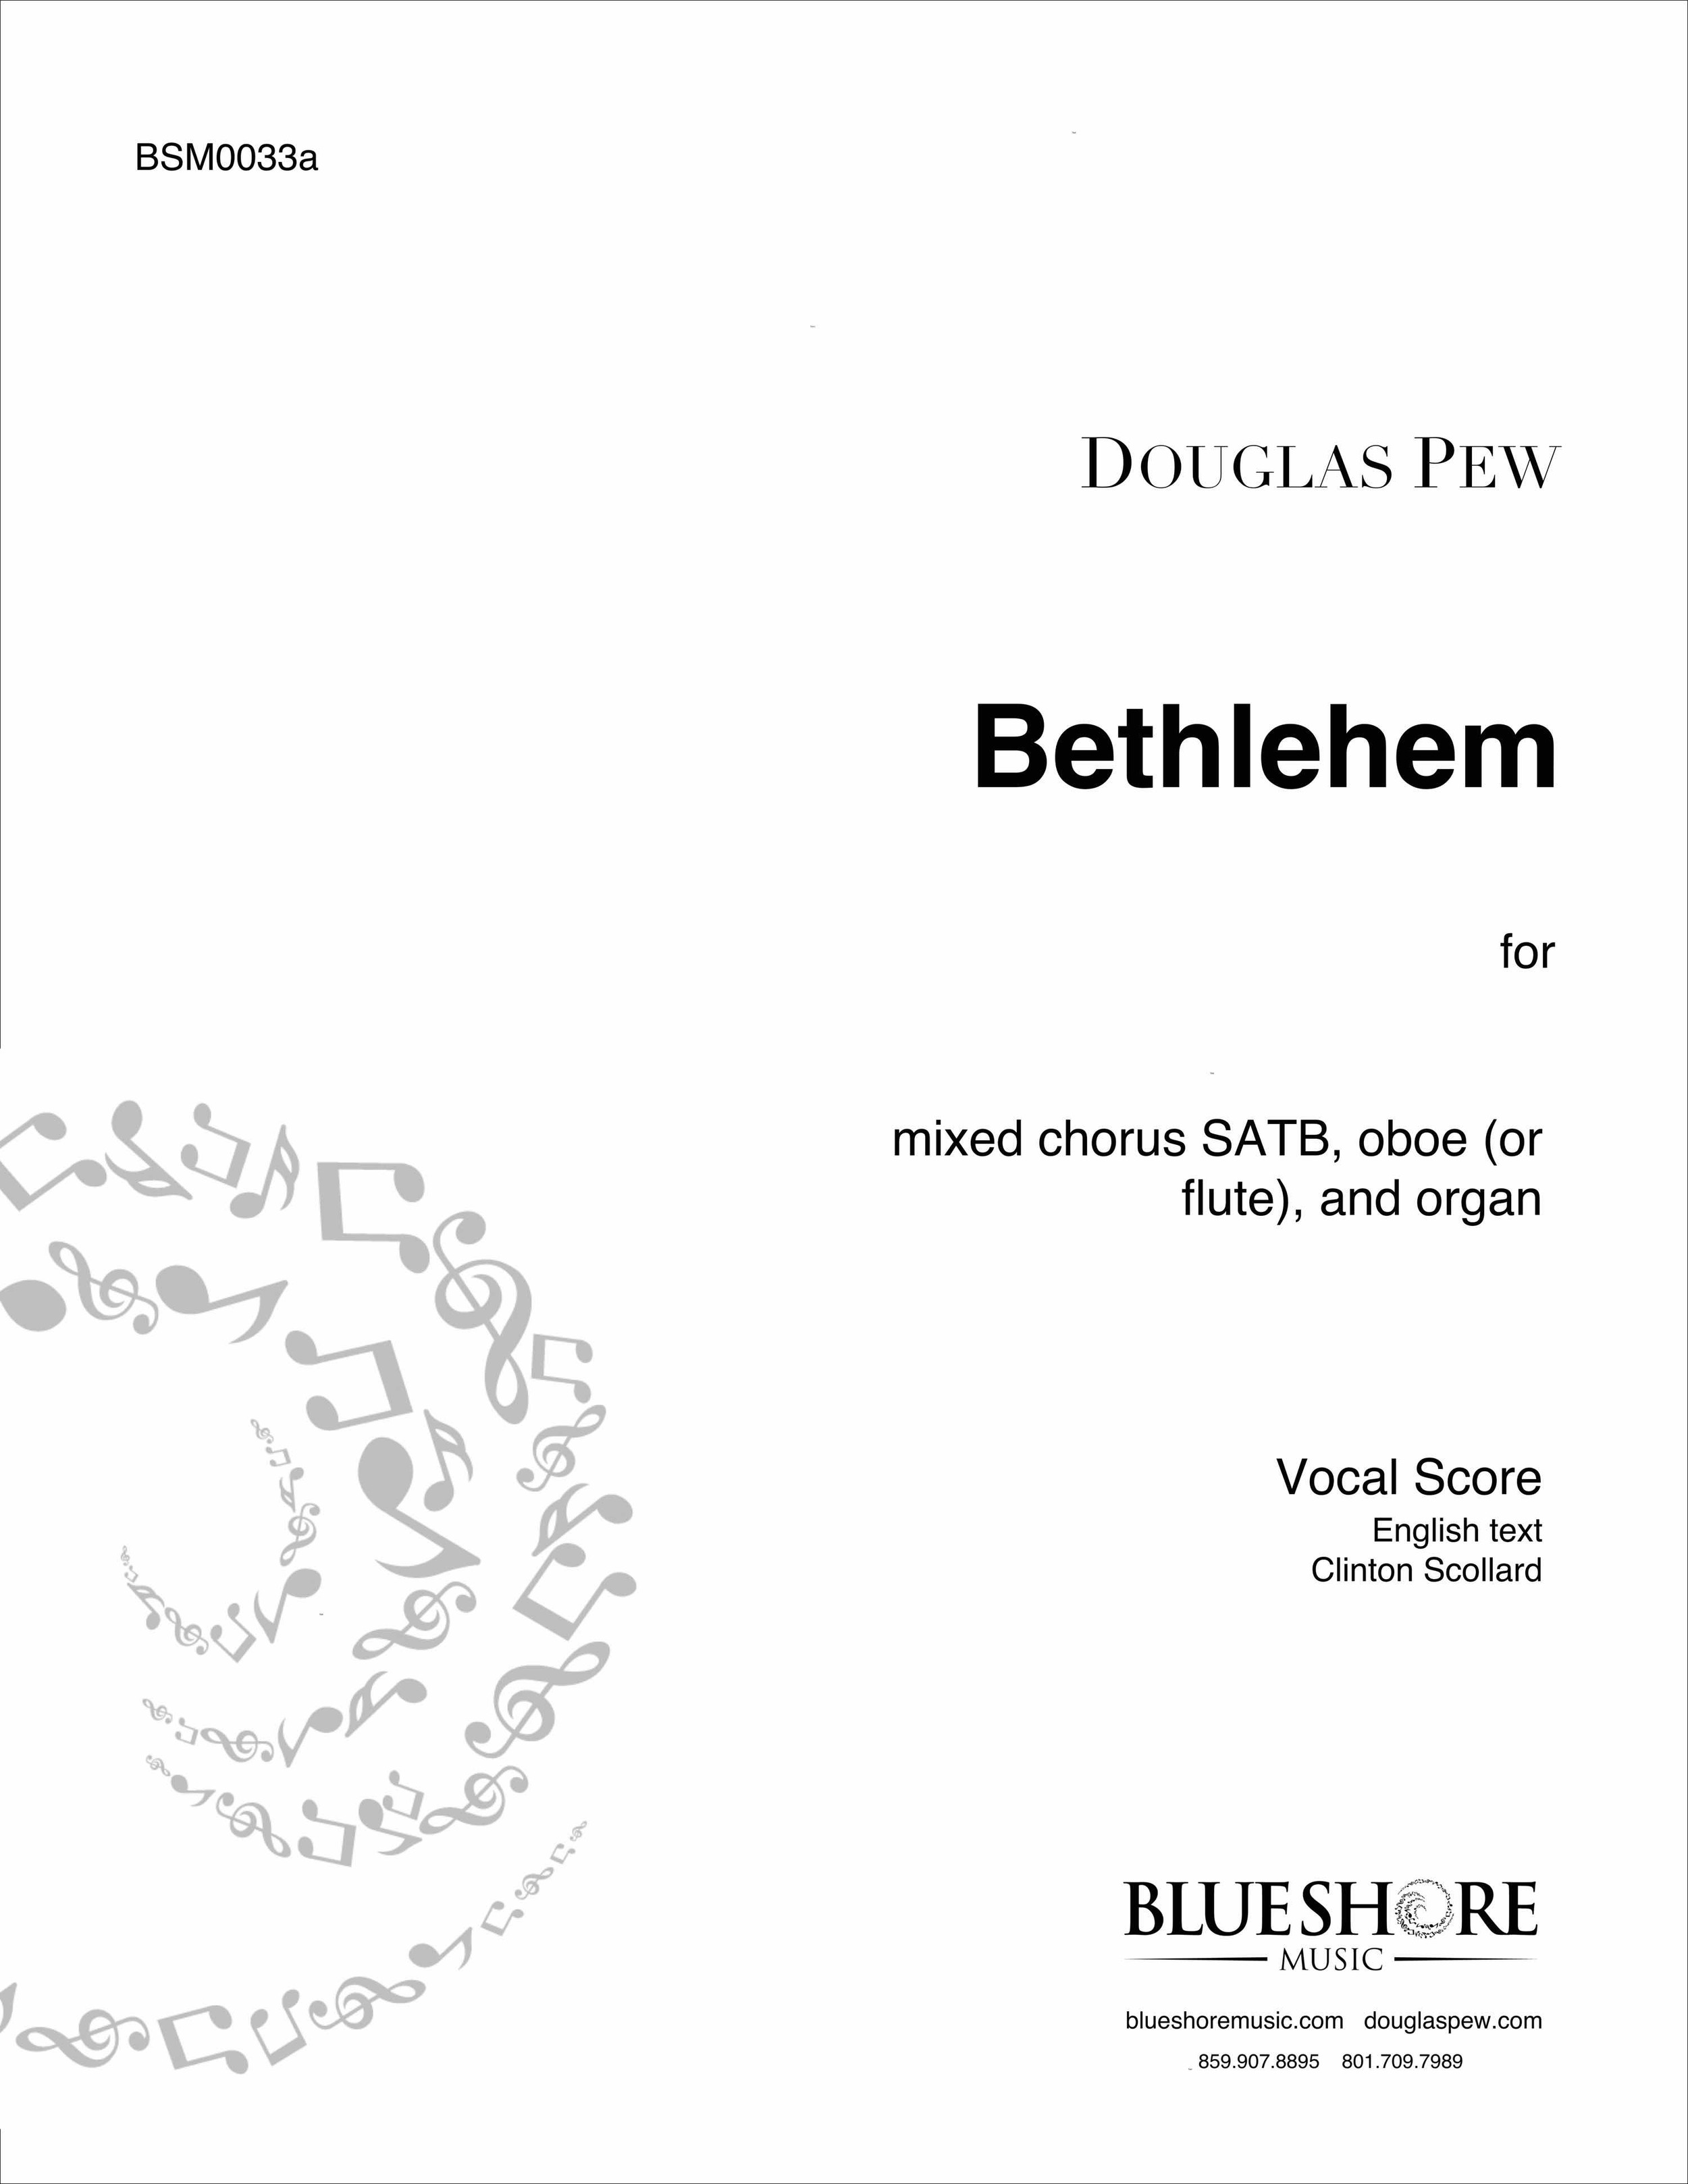 Bethlehem ,  for SATB, oboe (or flute), and organ